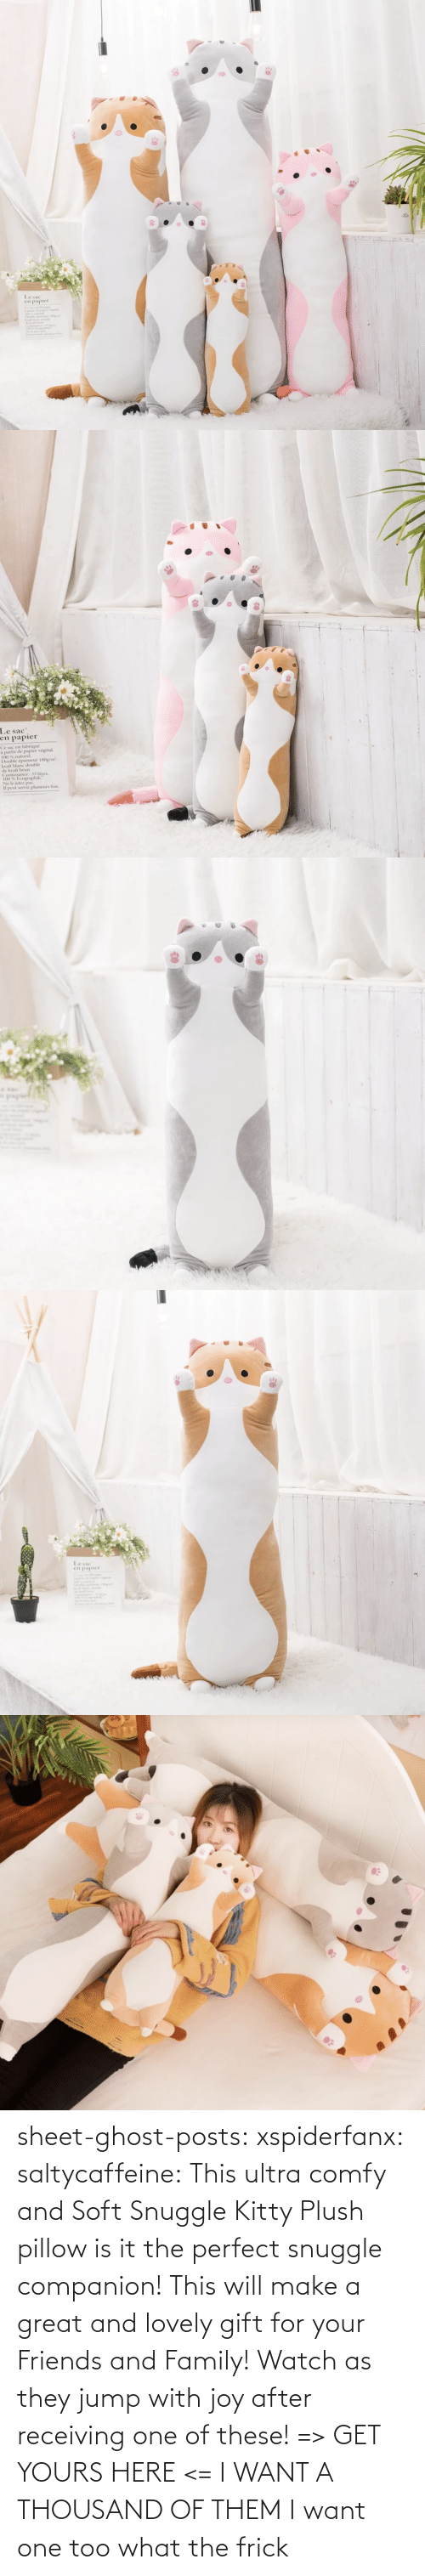 yours: sheet-ghost-posts: xspiderfanx:  saltycaffeine:  This ultra comfy and Soft Snuggle Kitty Plush pillow is it the perfect snuggle companion! This will make a great and lovely gift for your Friends and Family! Watch as they jump with joy after receiving one of these! => GET YOURS HERE <=    I WANT A THOUSAND OF THEM  I want one too what the frick